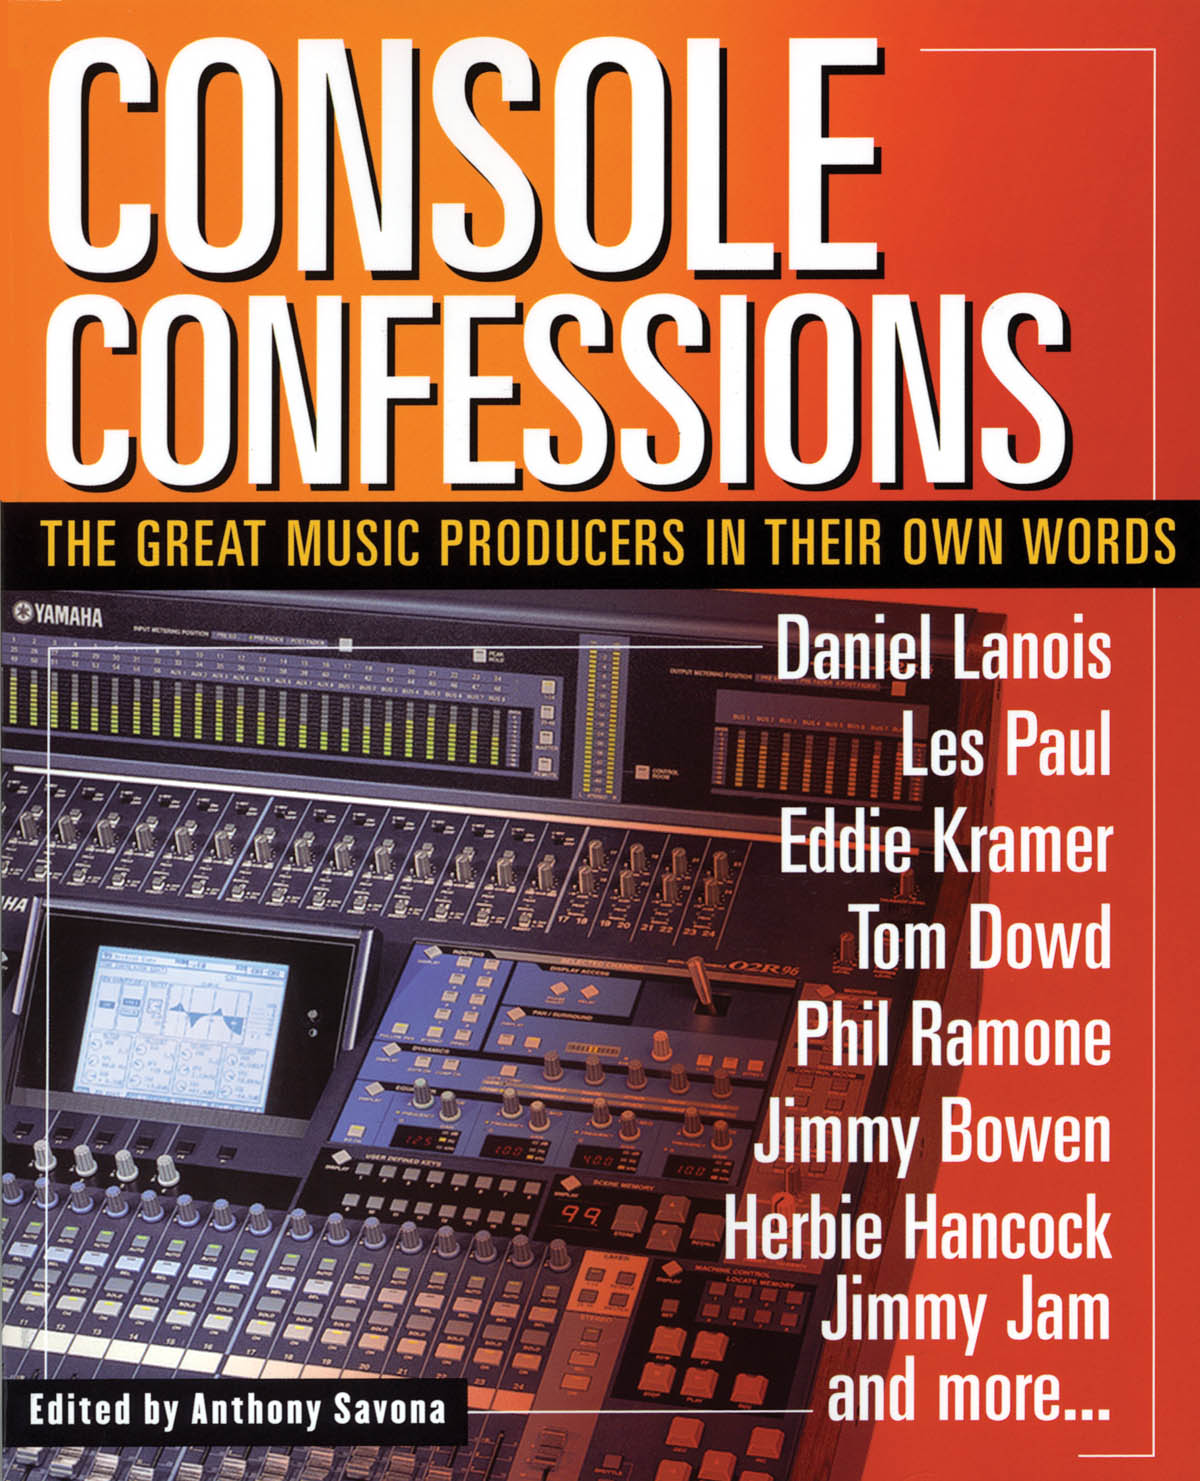 The Great Music Producers In Their Own Words